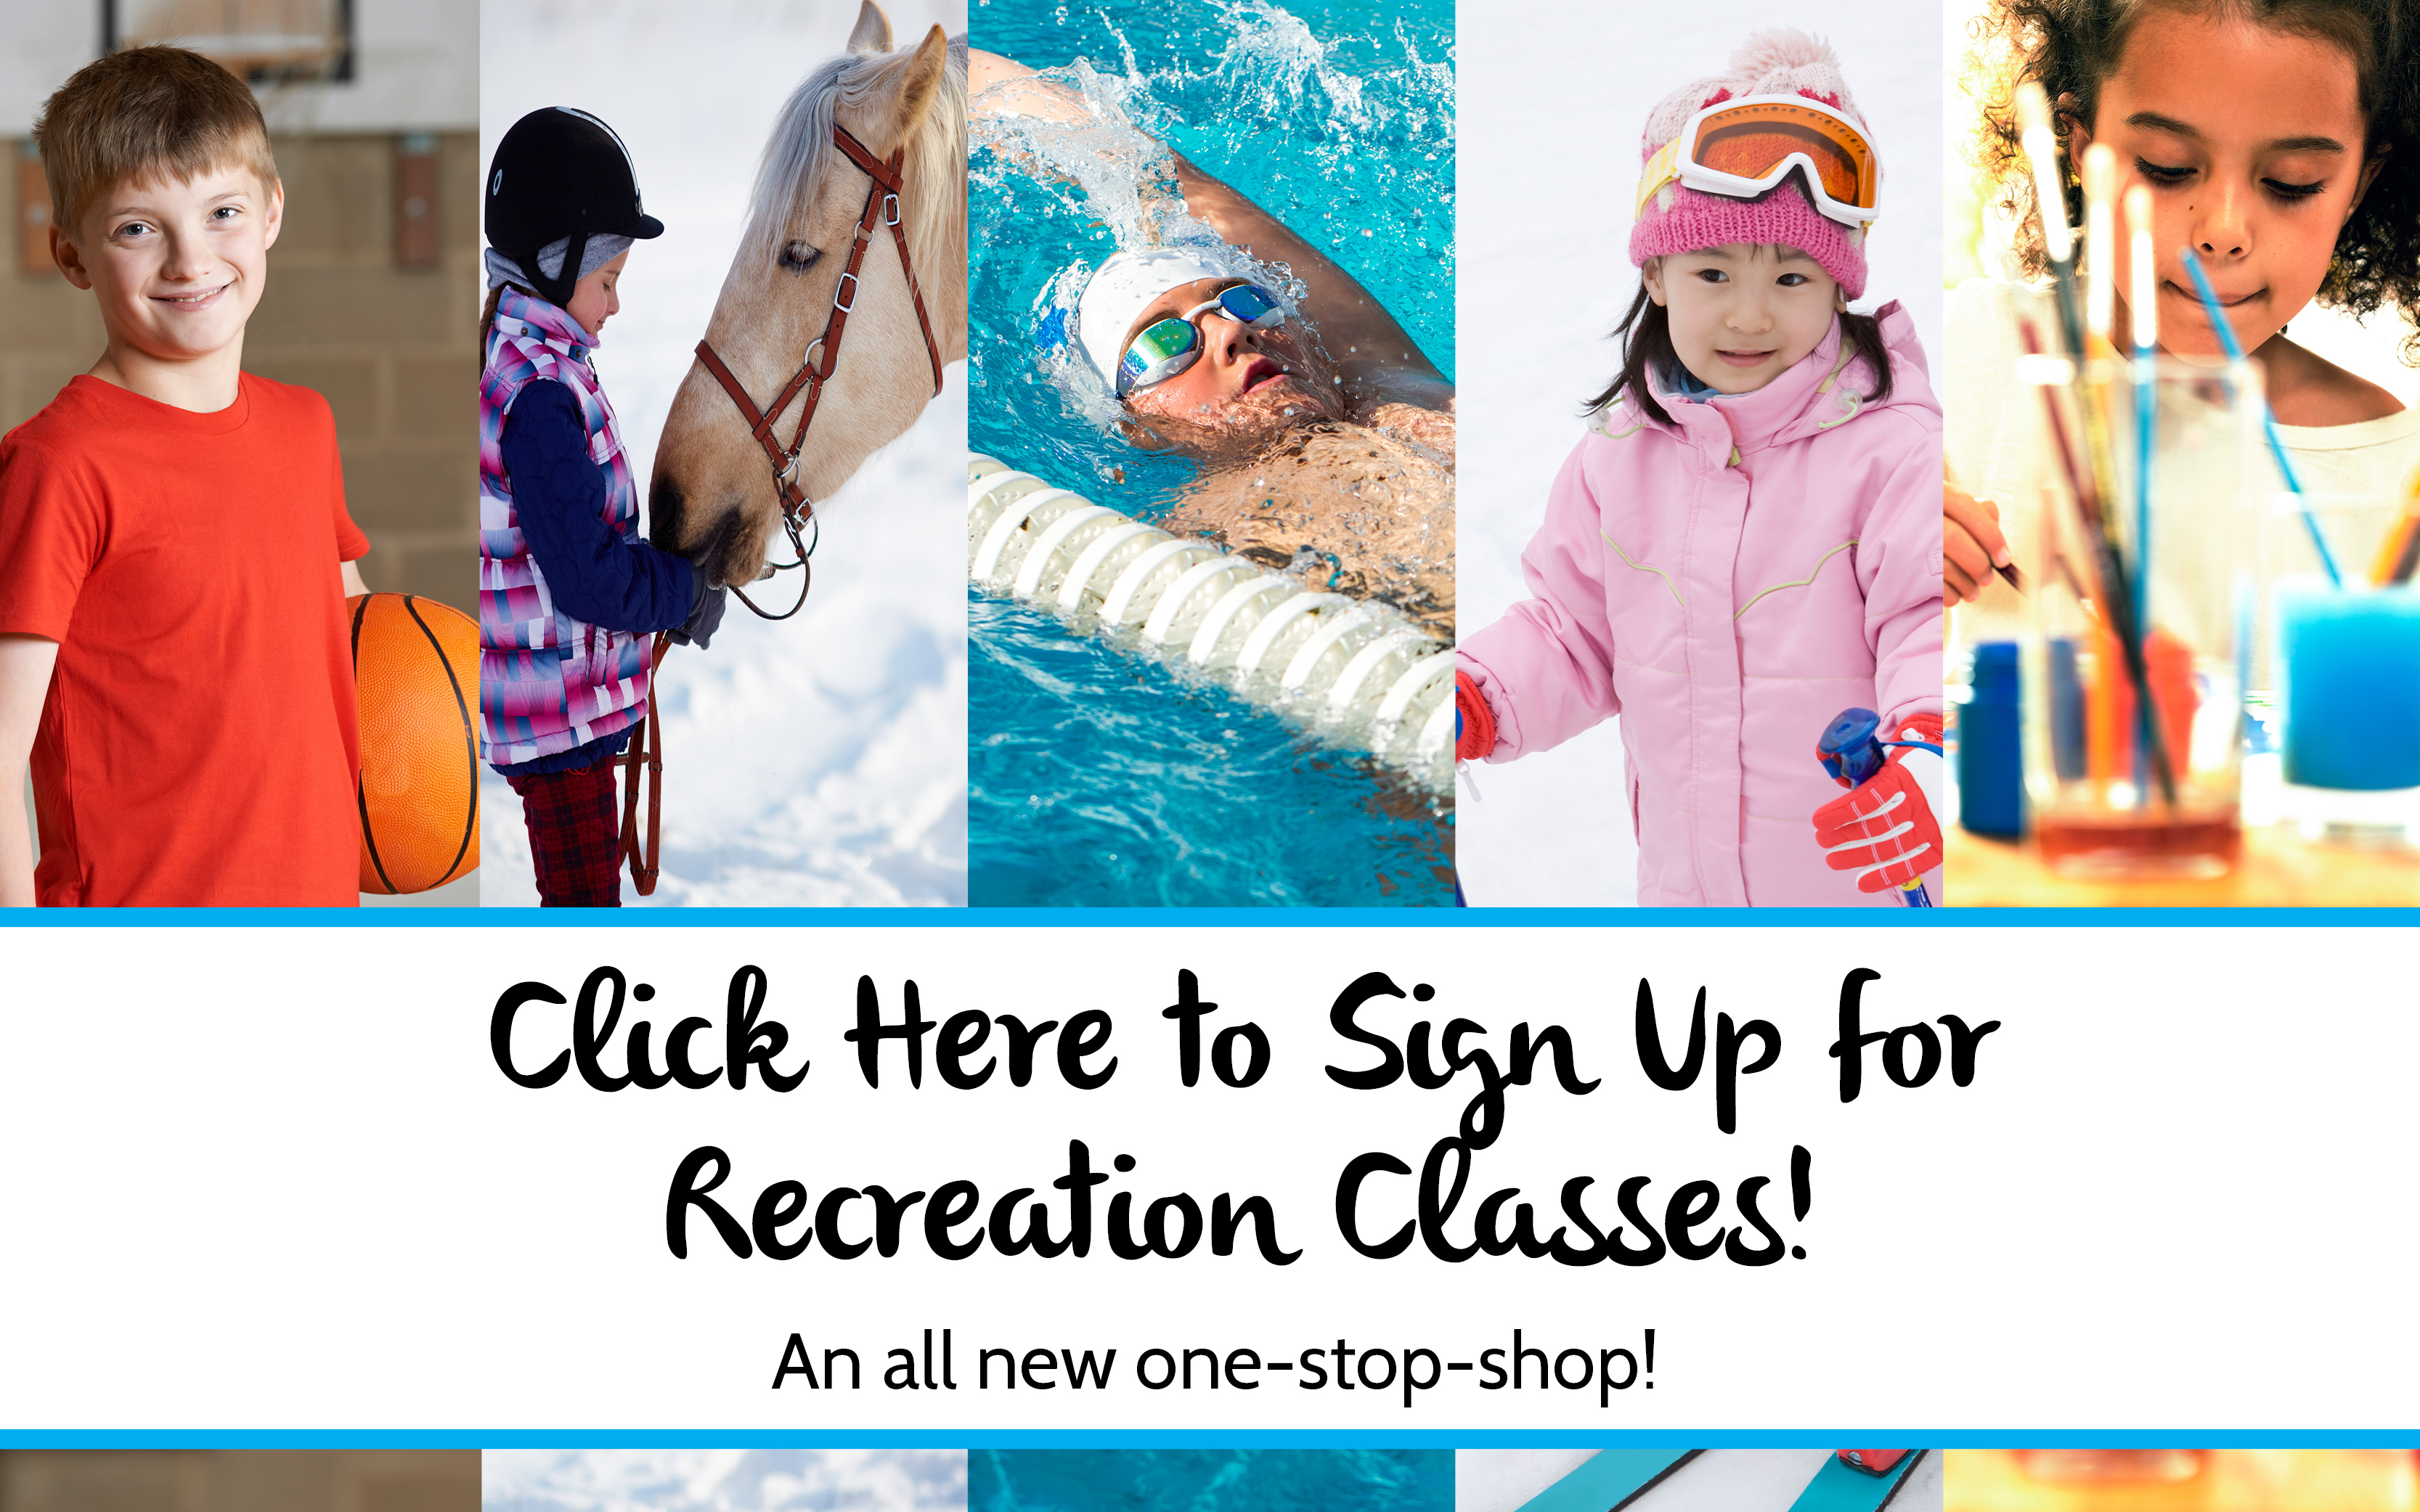 Click here to sign up for recreation classes!